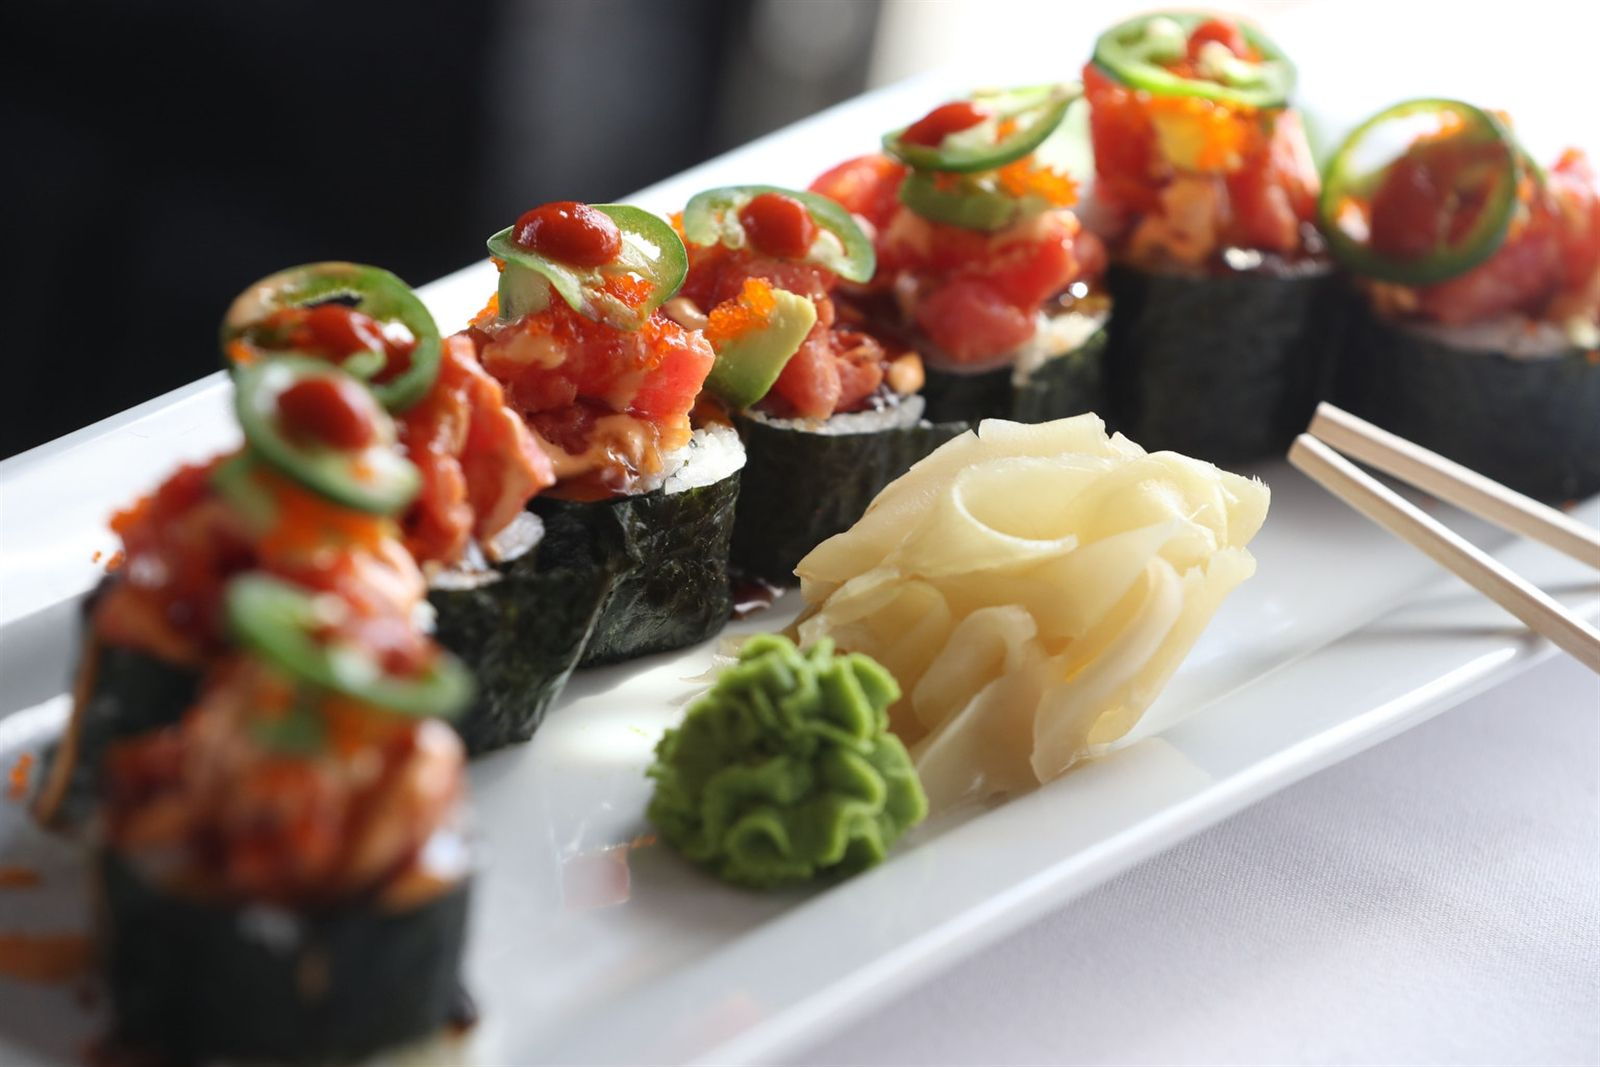 The Super Spicy Tuna Roll is made with cucumber, avocado, fish eggs, scallion, jalapeno, spicy sauce, teriyaki sauce and hot chili sauce.